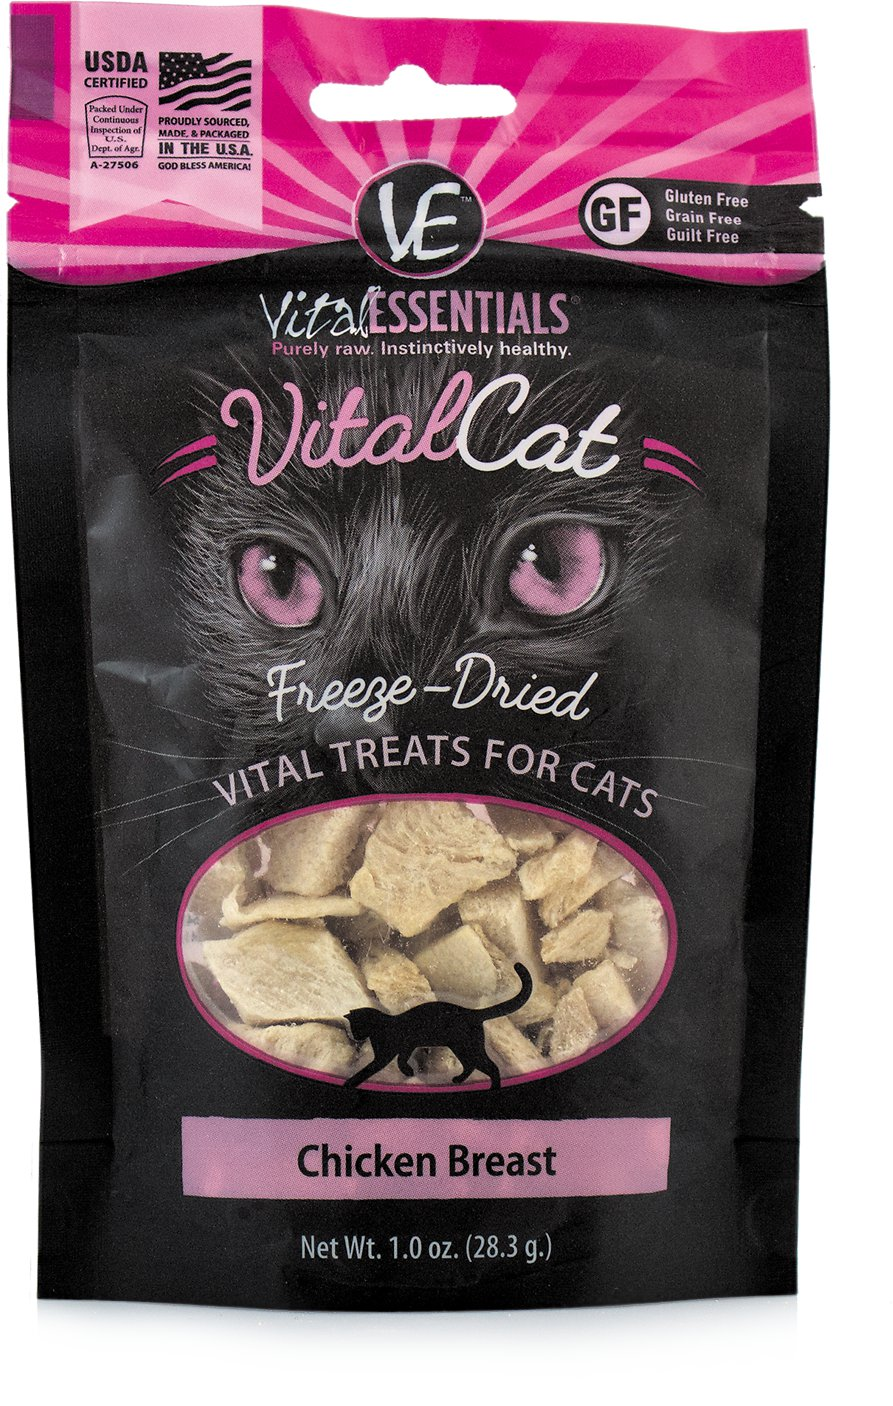 Vital Essentials Vital Cat Treats Chicken Breast Freeze-Dried Cat Treats, 1-oz bag